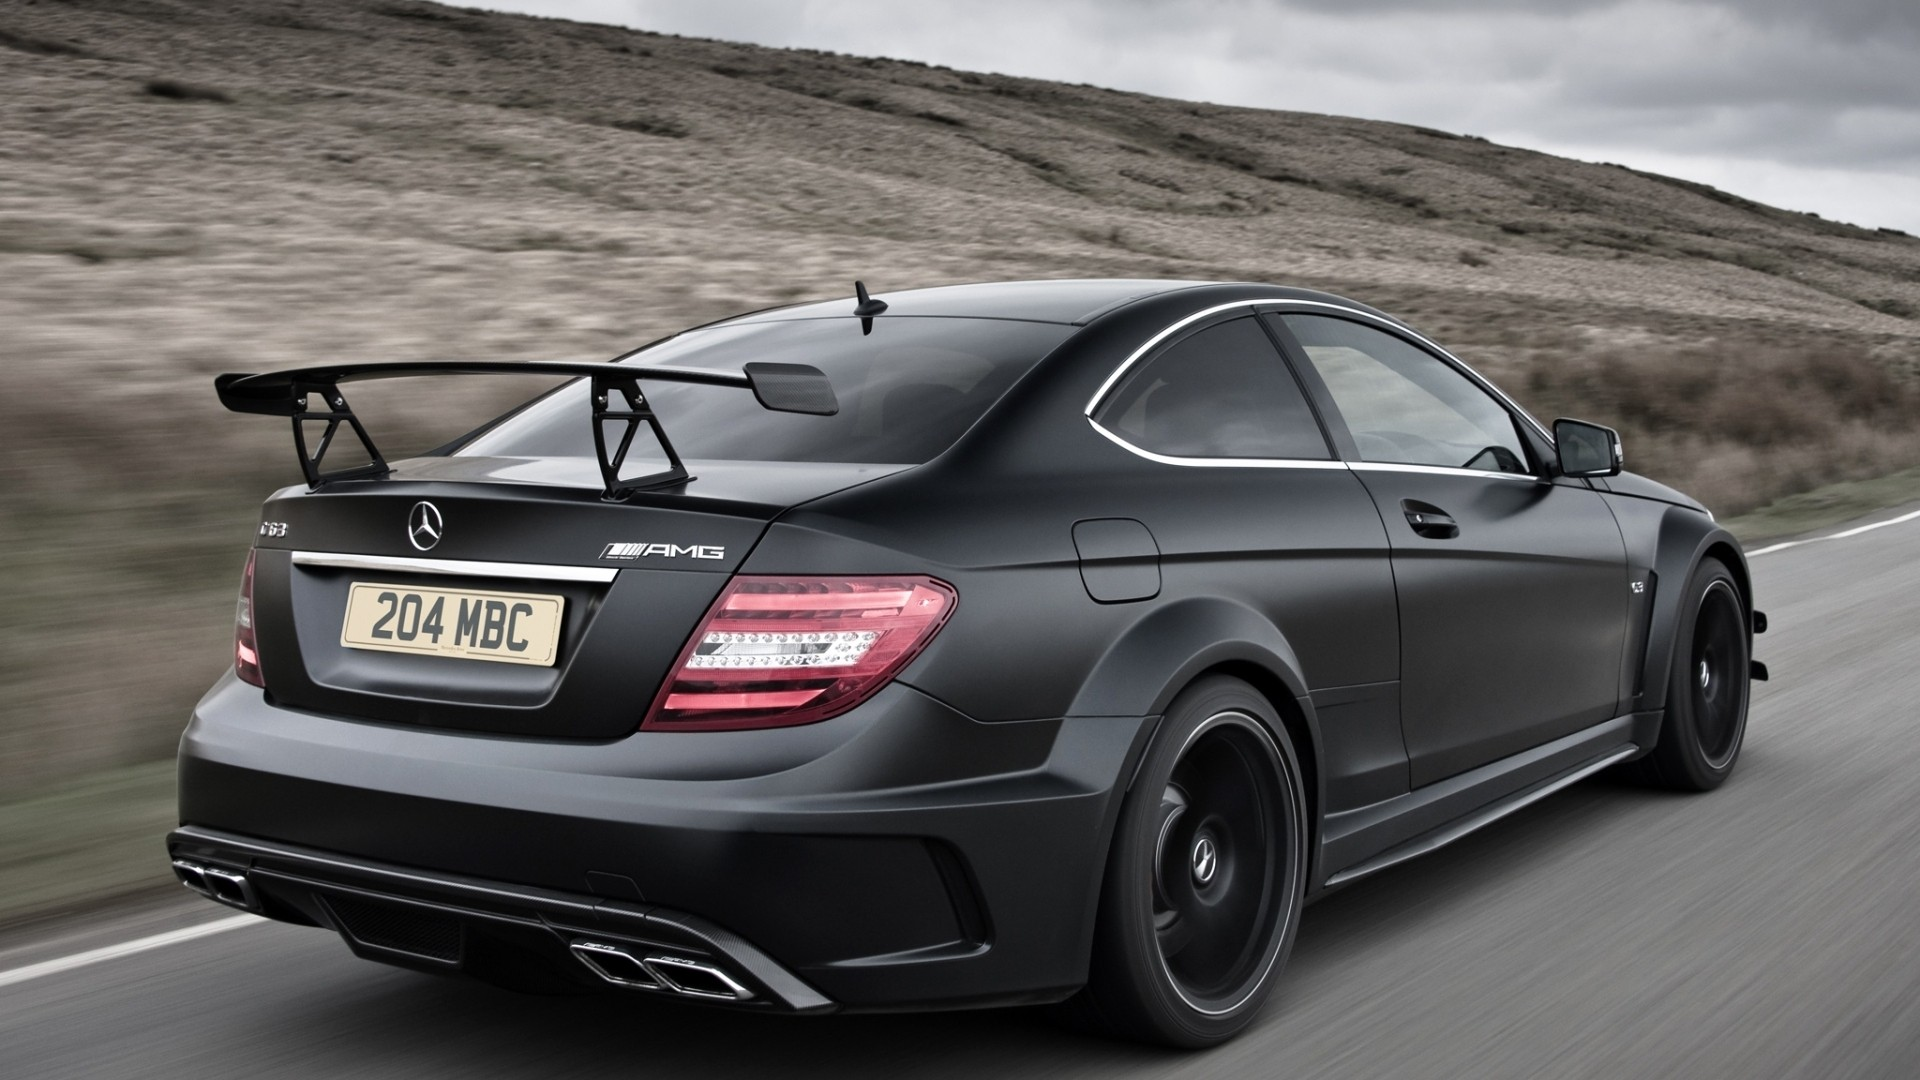 c63 amg wallpaper wallpapersafari. Black Bedroom Furniture Sets. Home Design Ideas